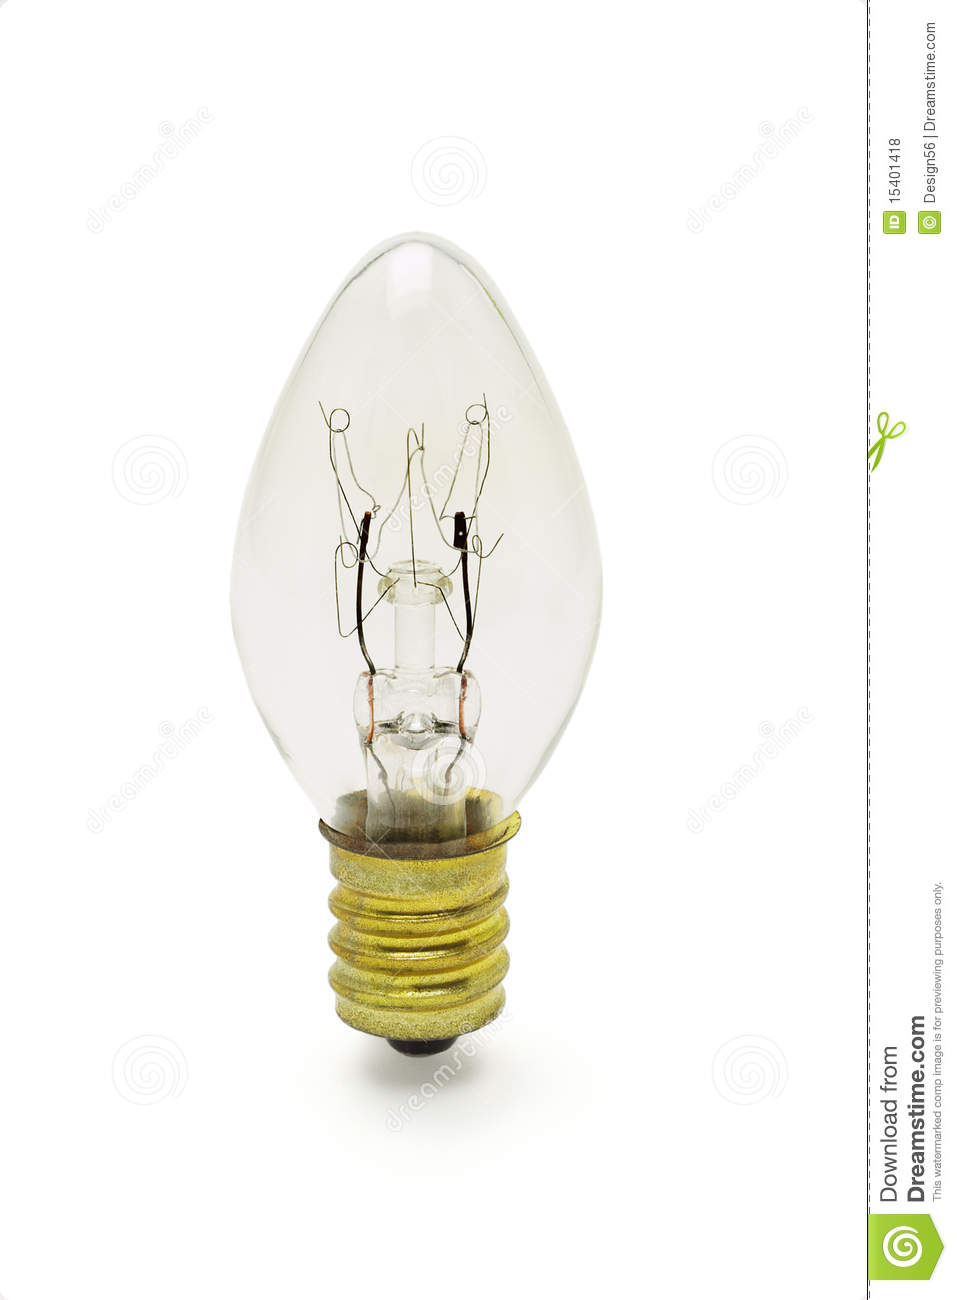 Tungsten Light Bulb Royalty Free Stock Photos Image 15401418